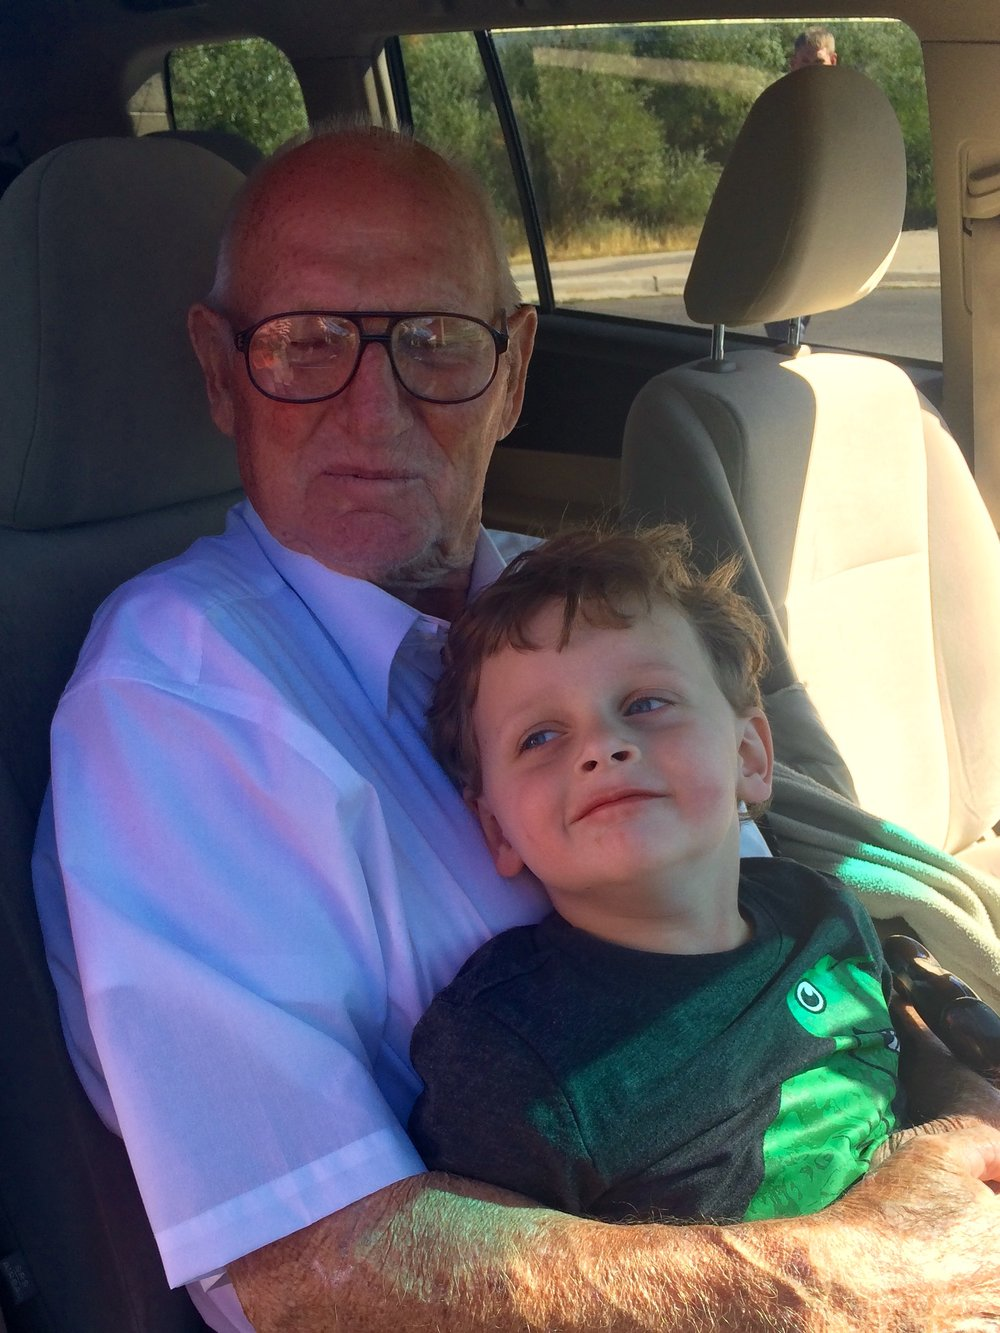 I somehow have no pics of the wedding we attended or the homecoming (two of Dave's cousins), but we did get to see a lot of Dave's family. Here is Asher on Great Grandpa Brinkerhoff's lap. Great Grandpa Brinkerhoff is almost a third parent to Dave.